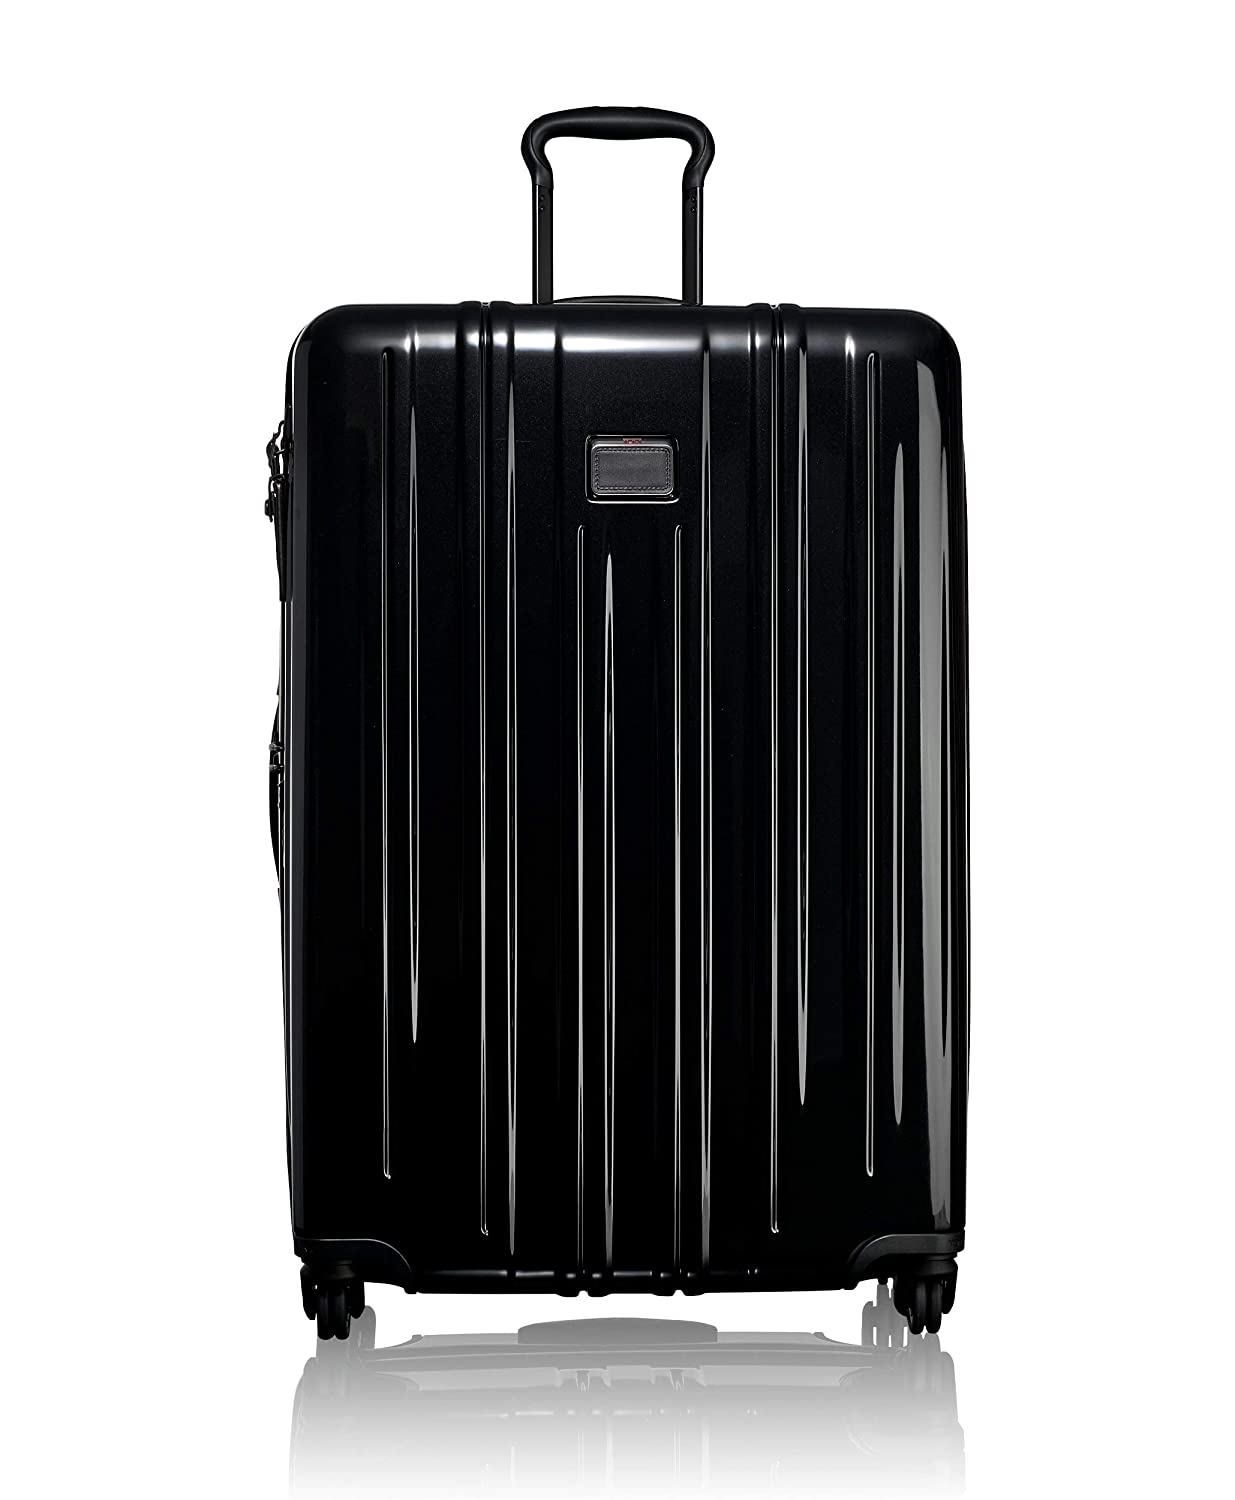 TUMI - V3 Extended Trip Expandable Packing Case Large Suitcase - Hardside Luggage for Men and Women - Black